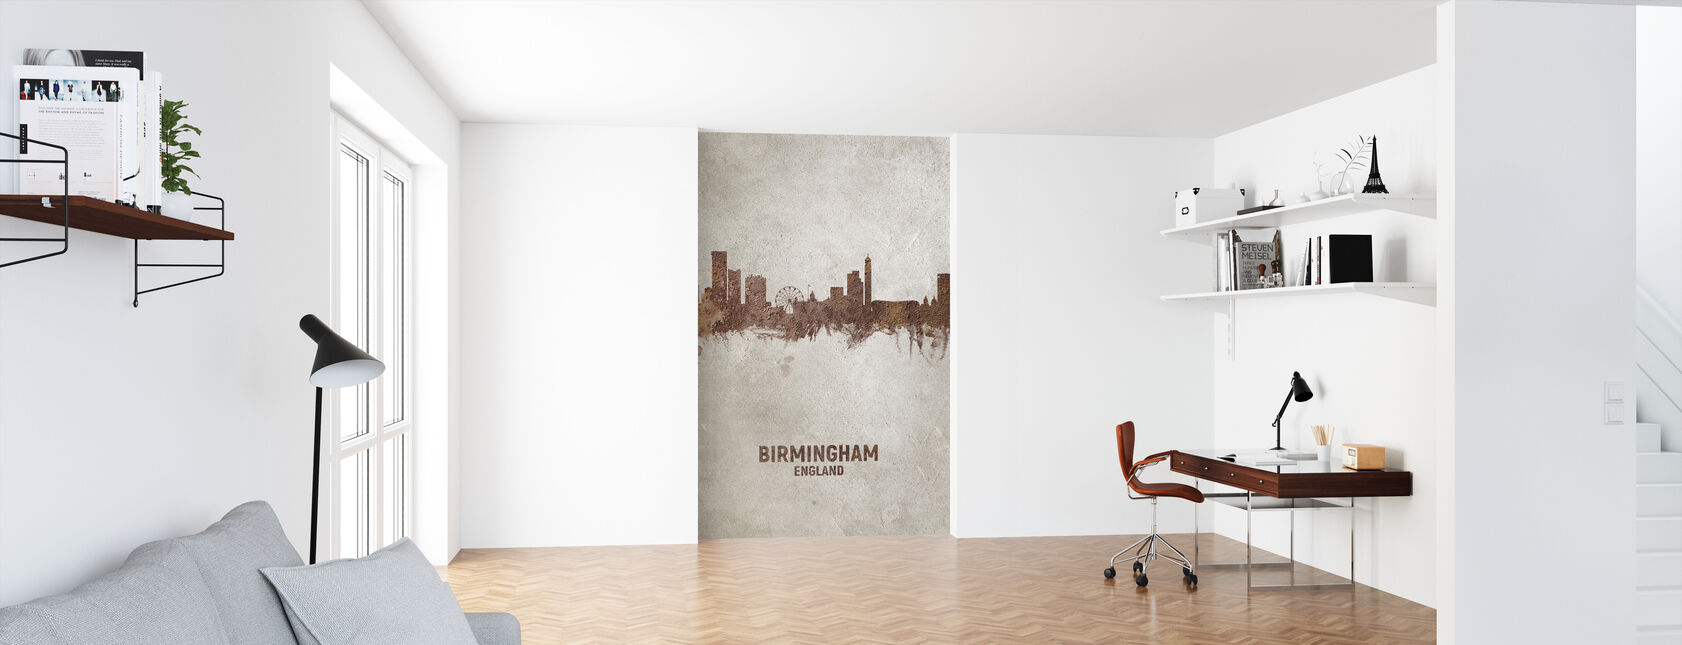 Birmingham England Rust Skyline - Wallpaper - Office